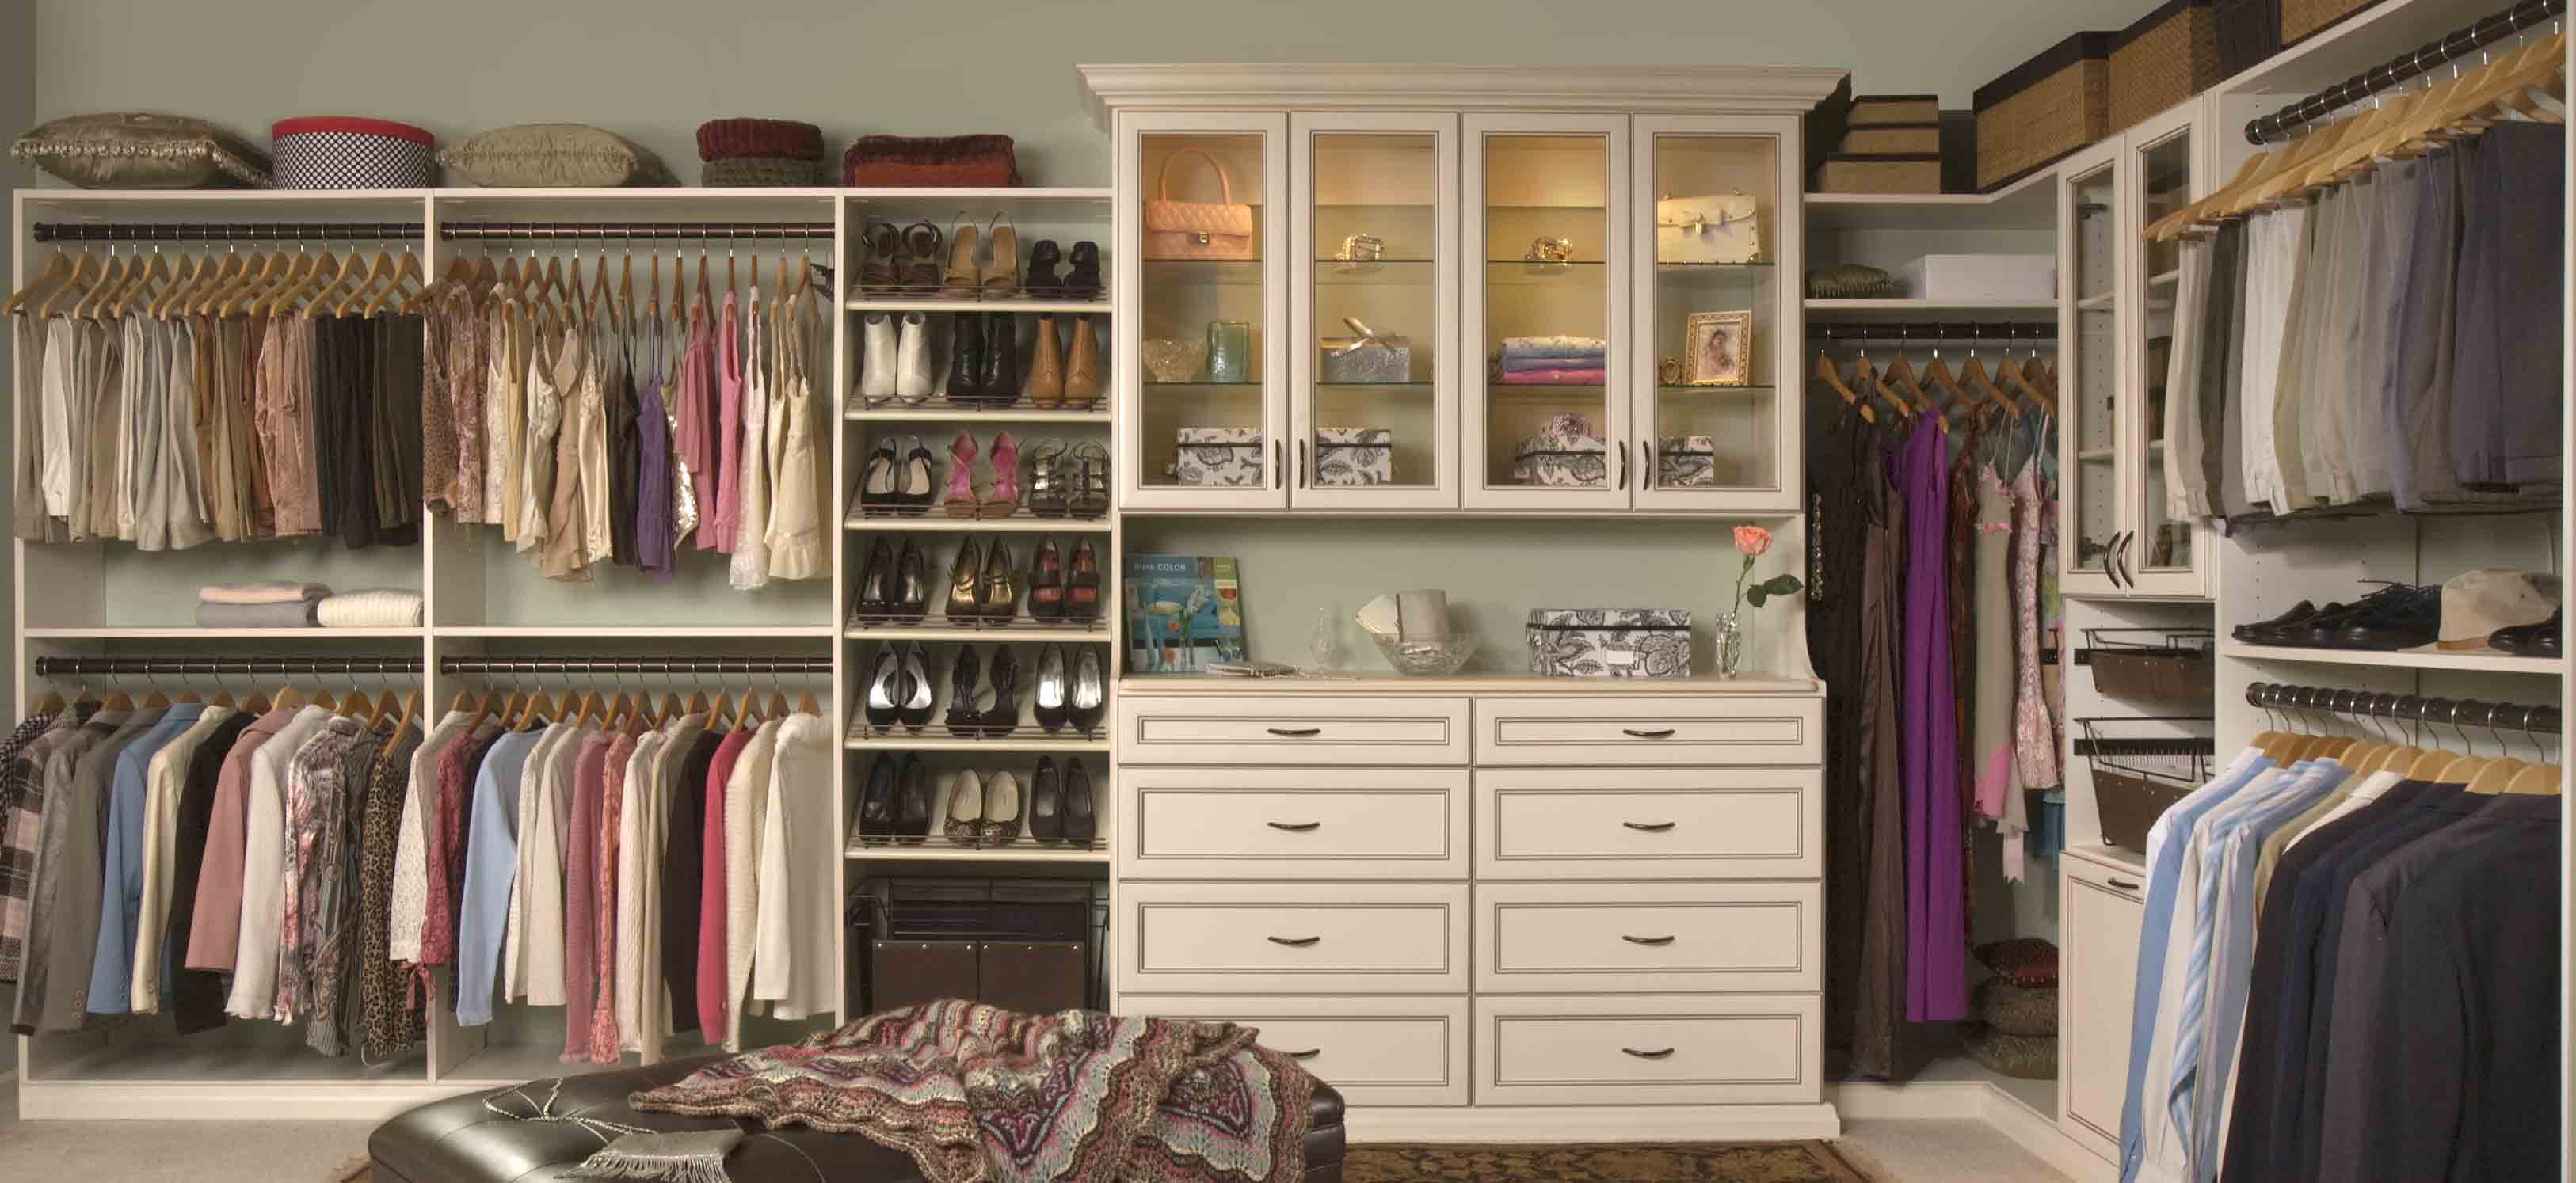 Attractive All About Closets LLC | Home Organization At Unit D4   Forked River NJ